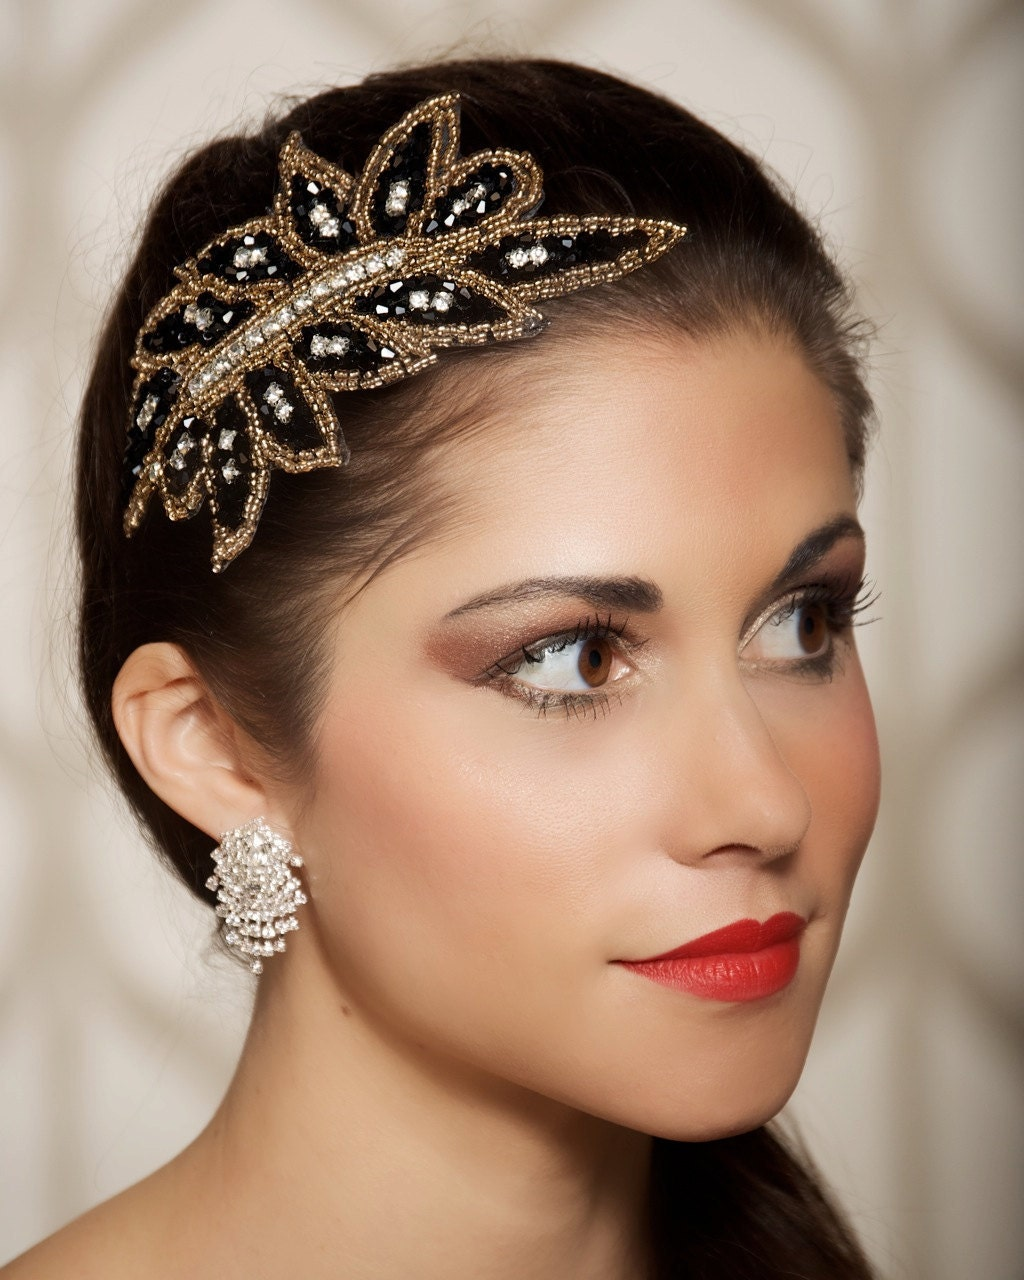 Hair Accessories. Perfect hair is the key to looking totally amazing so up your game and add some sparkle to your locks. Top it off with the perfect hair accessories to make your outfit party perfect.